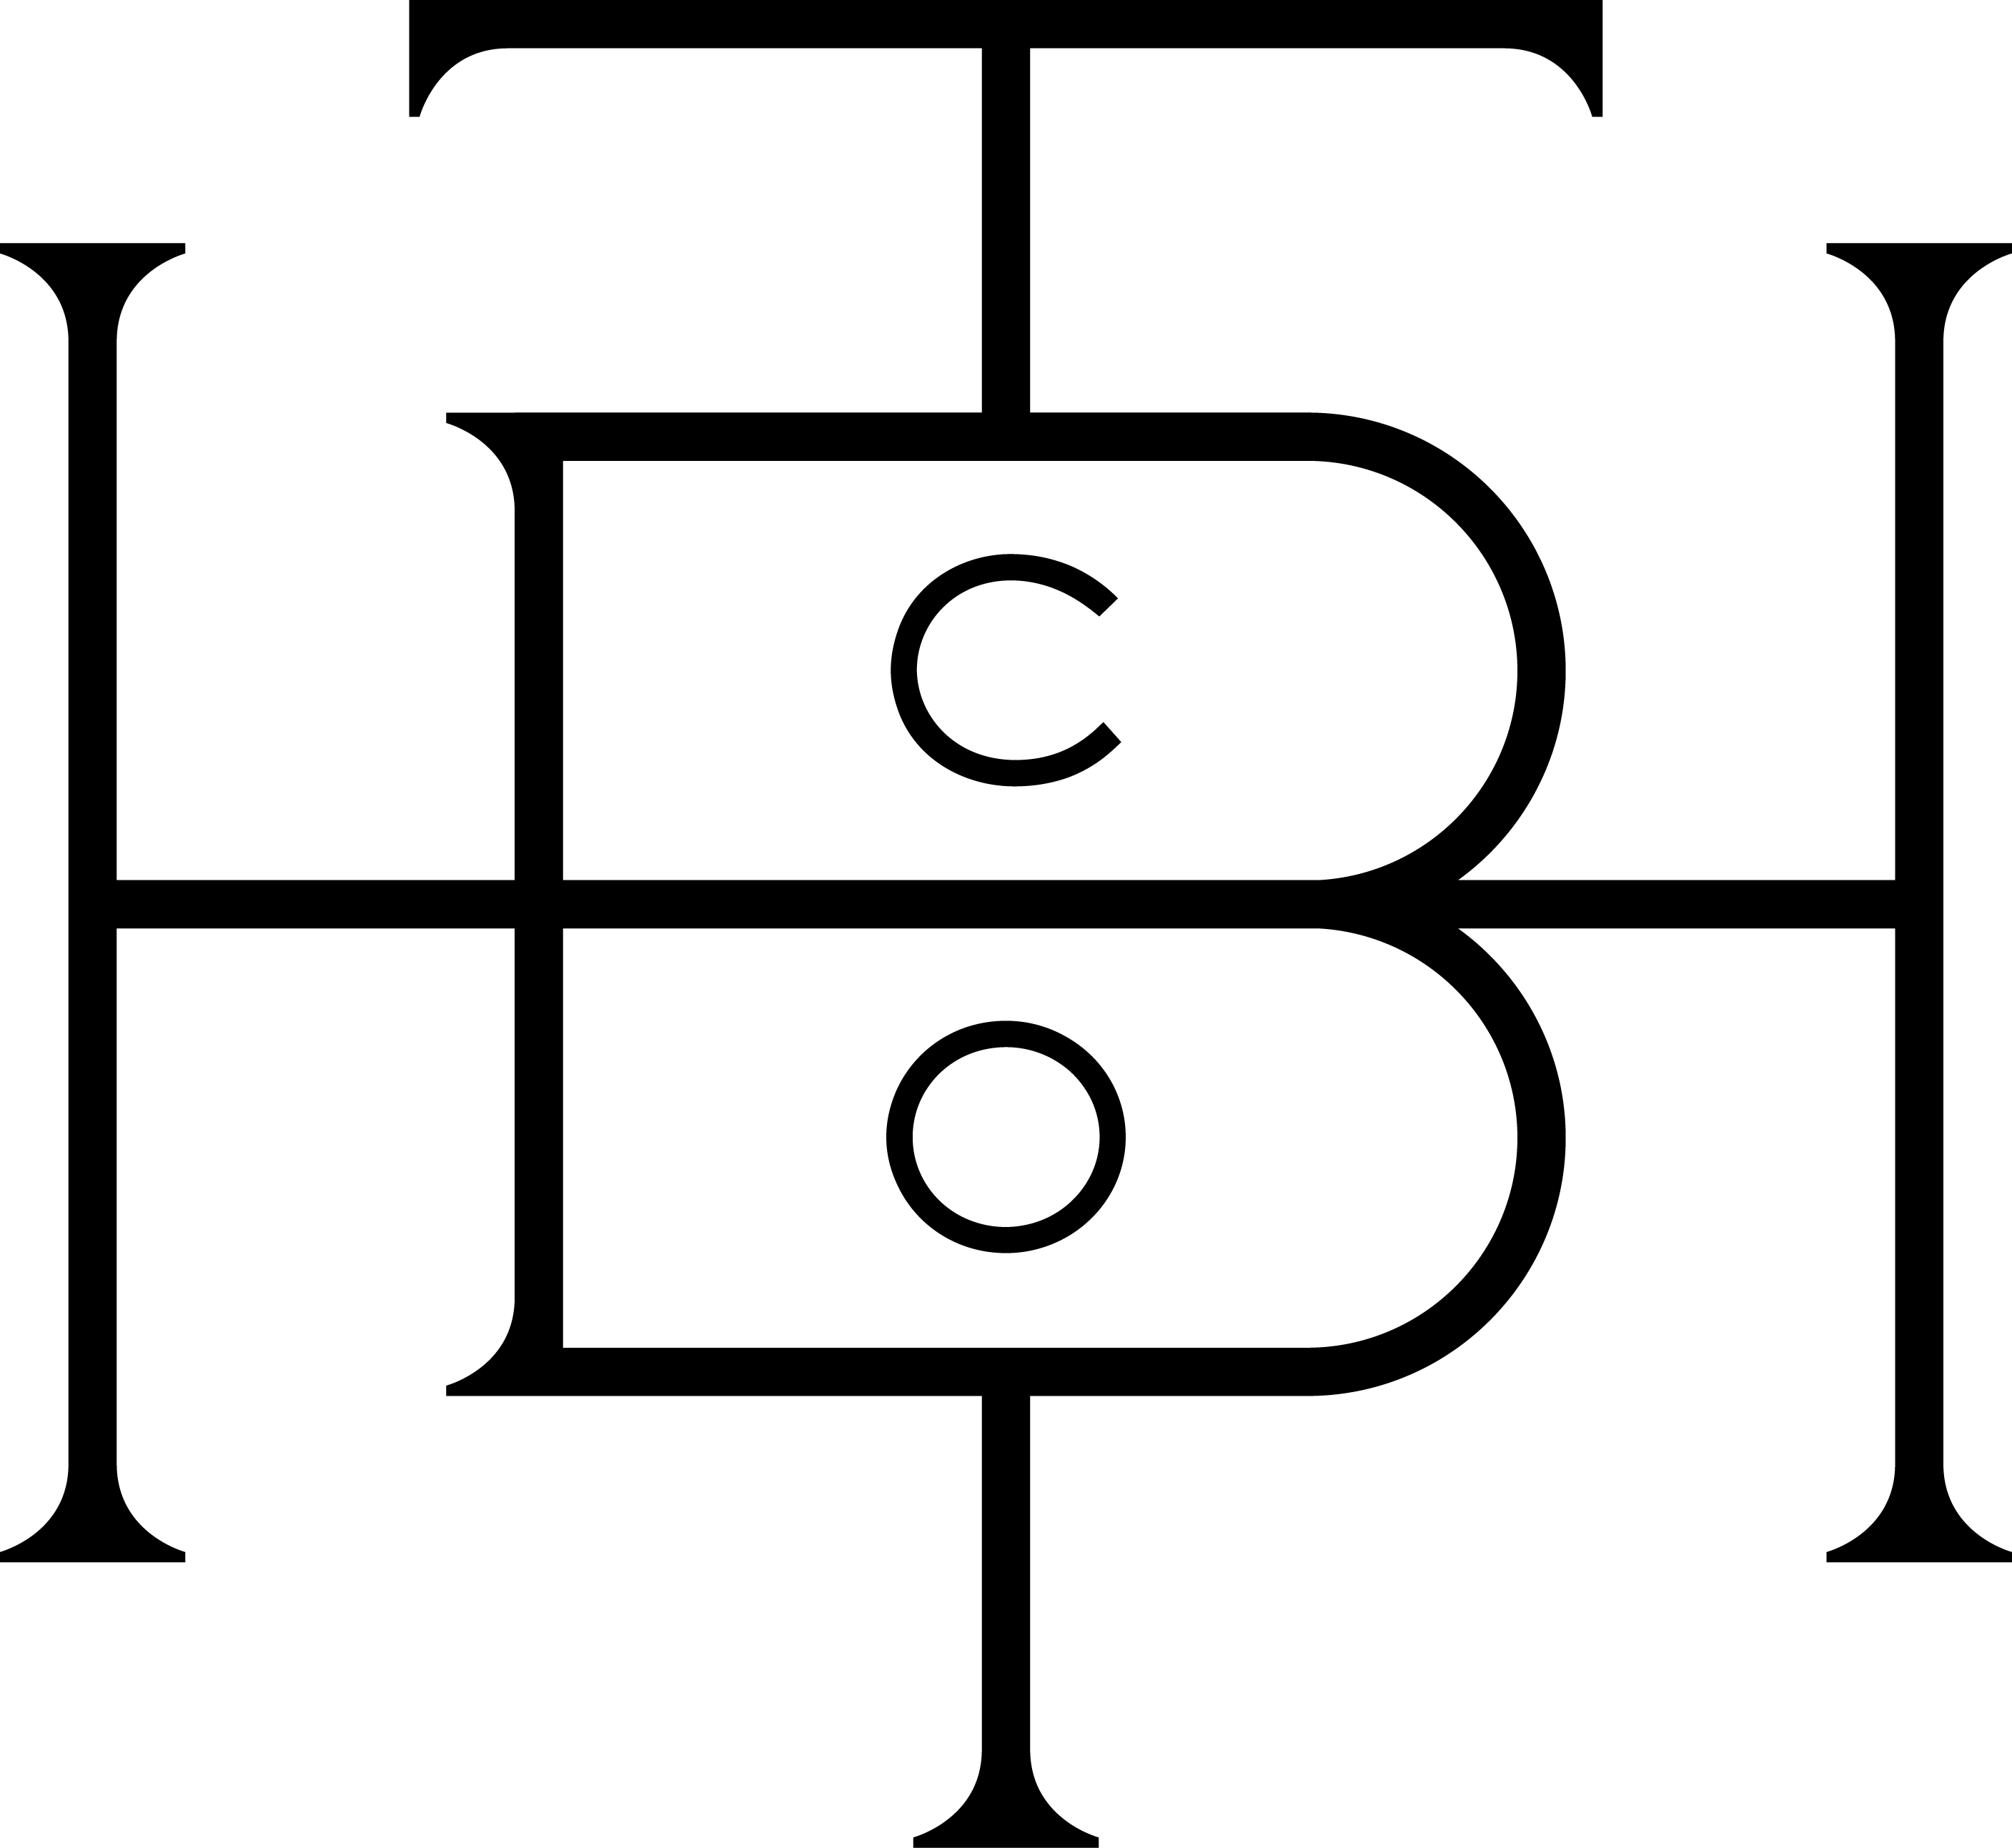 The Brooklyn Home Company logo